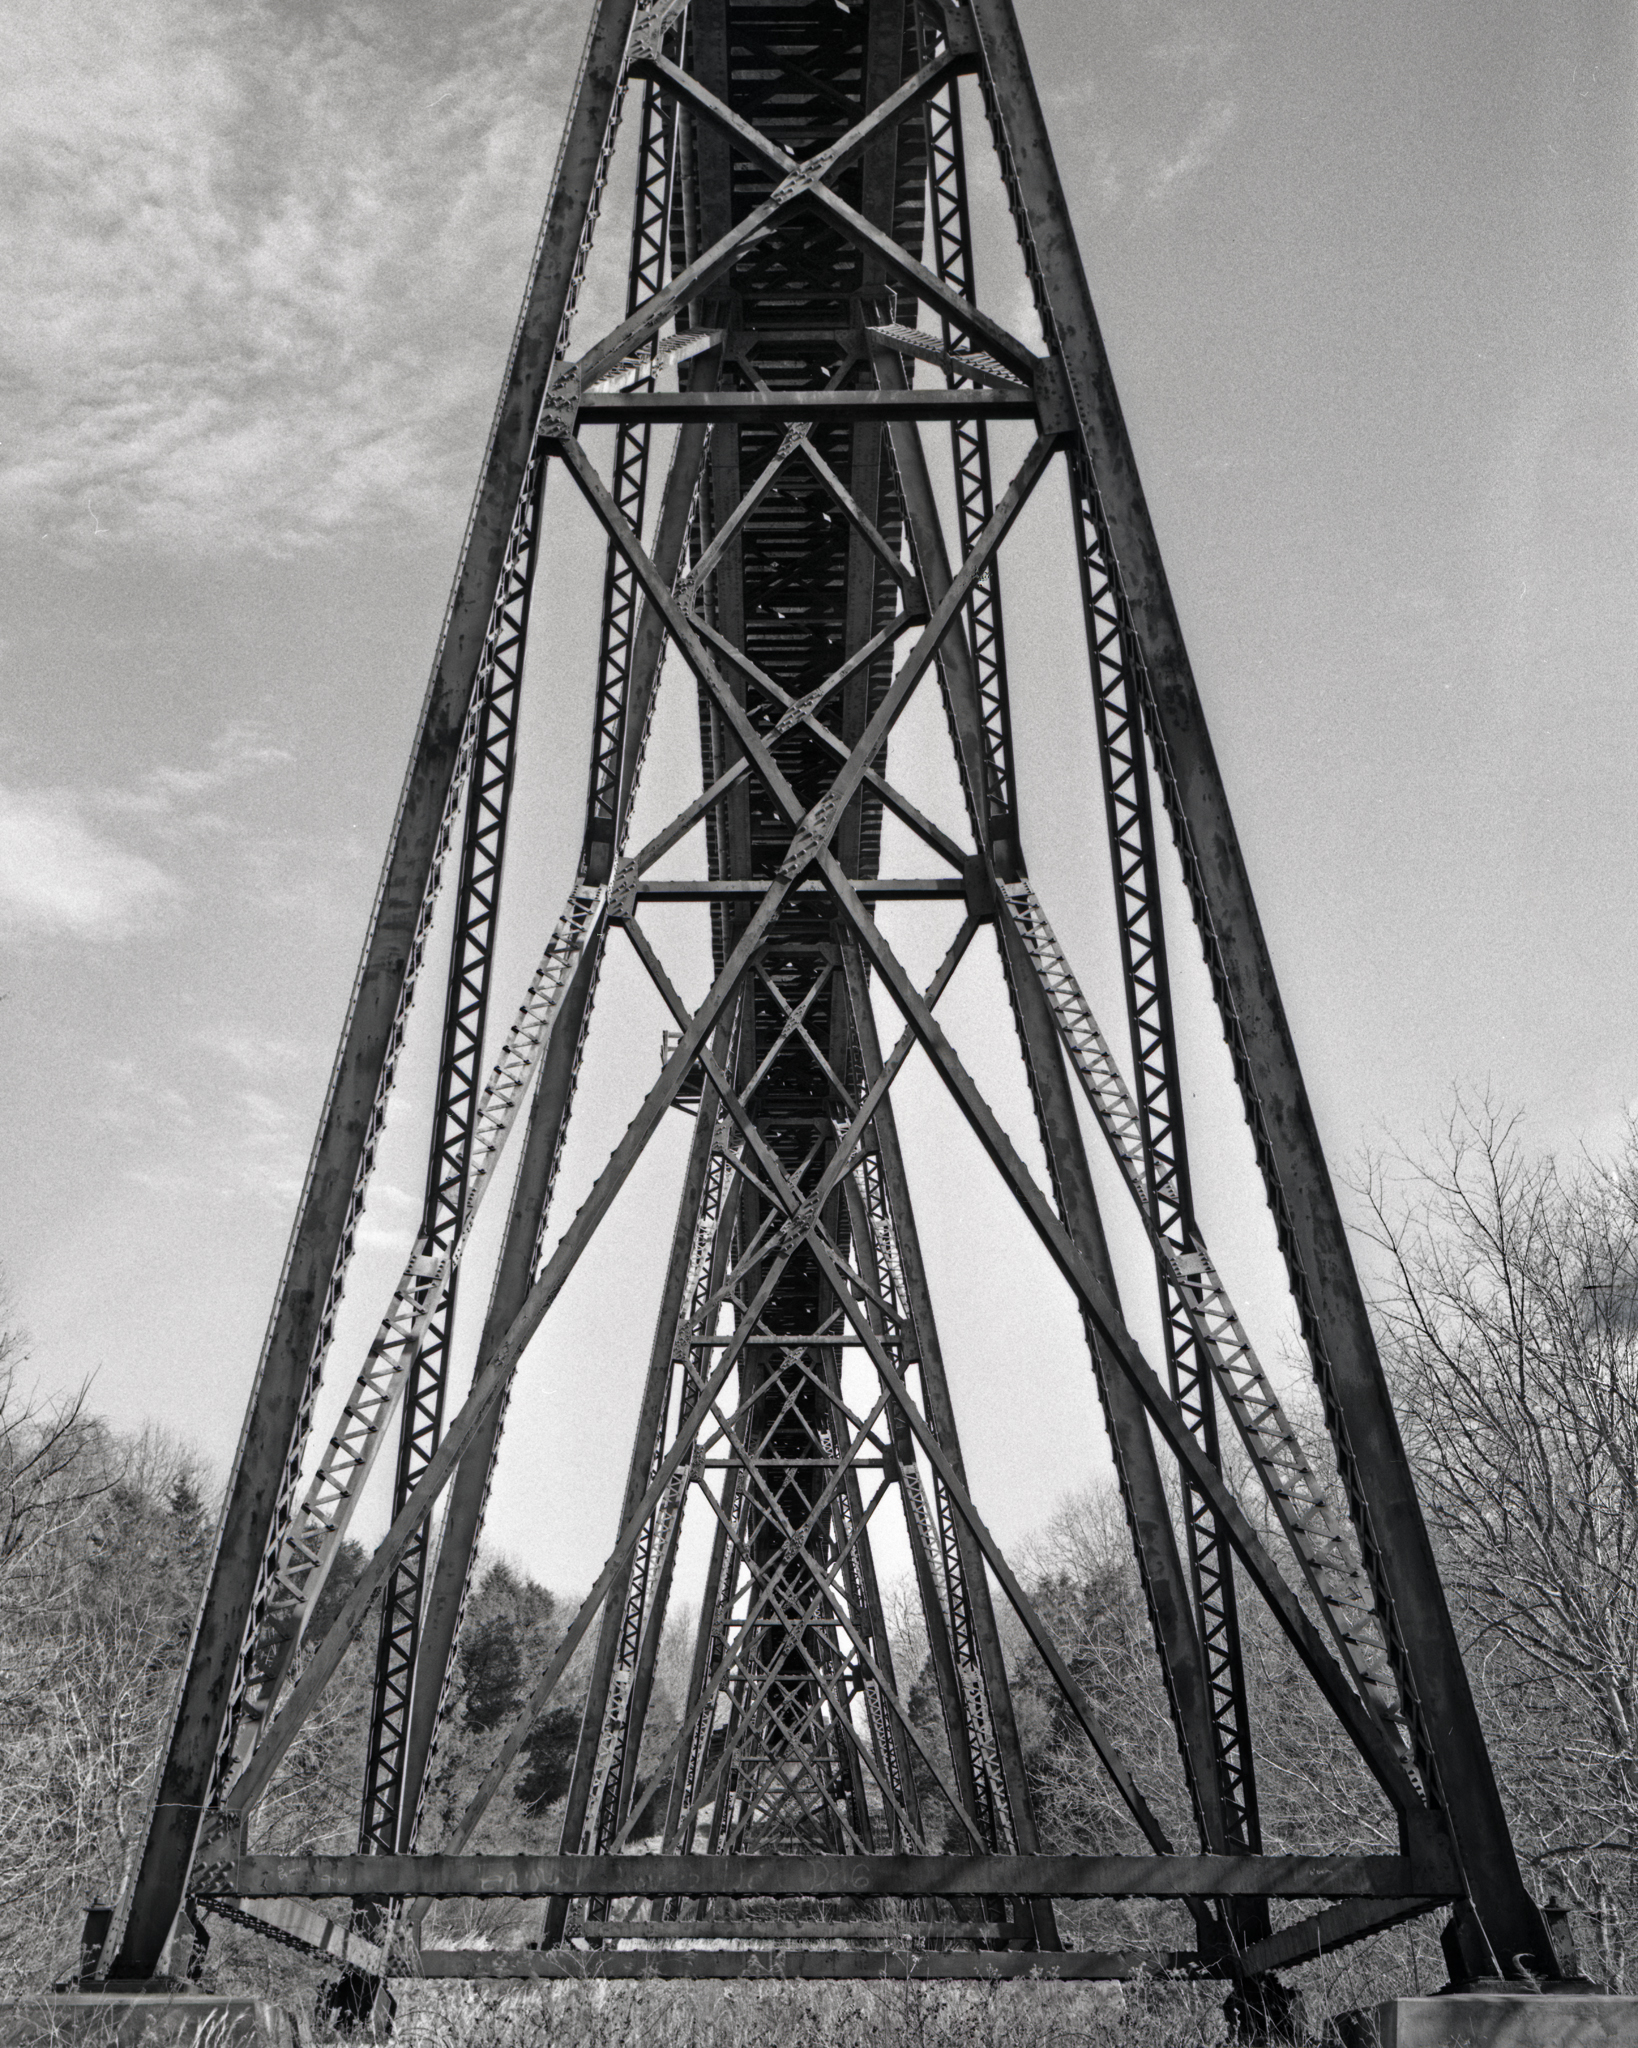 Shepherstown_railway_bridge_2018-10-06_Toko_4x5_90mm_Angulon_HP5_400_at_400_PyrocatHD_1_1_100_underside_001.jpg